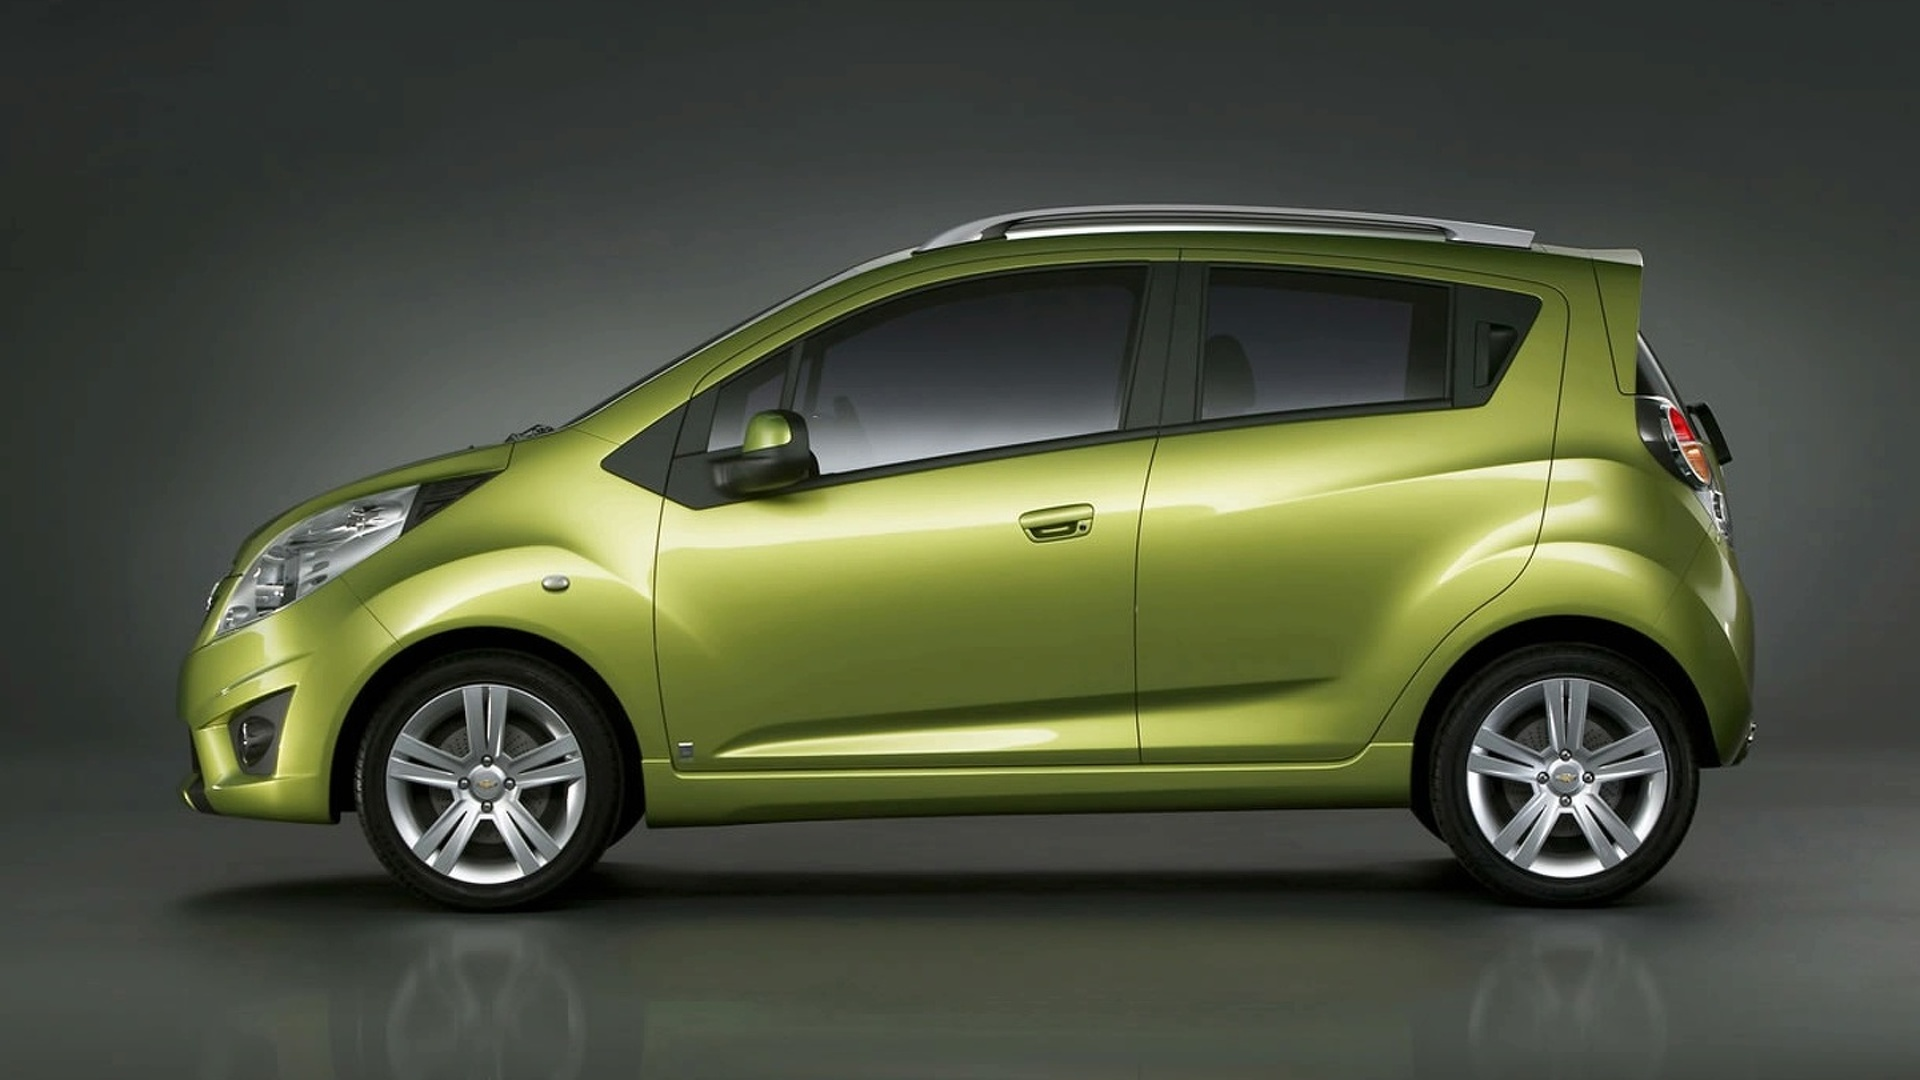 2010 chevrolet spark: new pics and details released ahead of